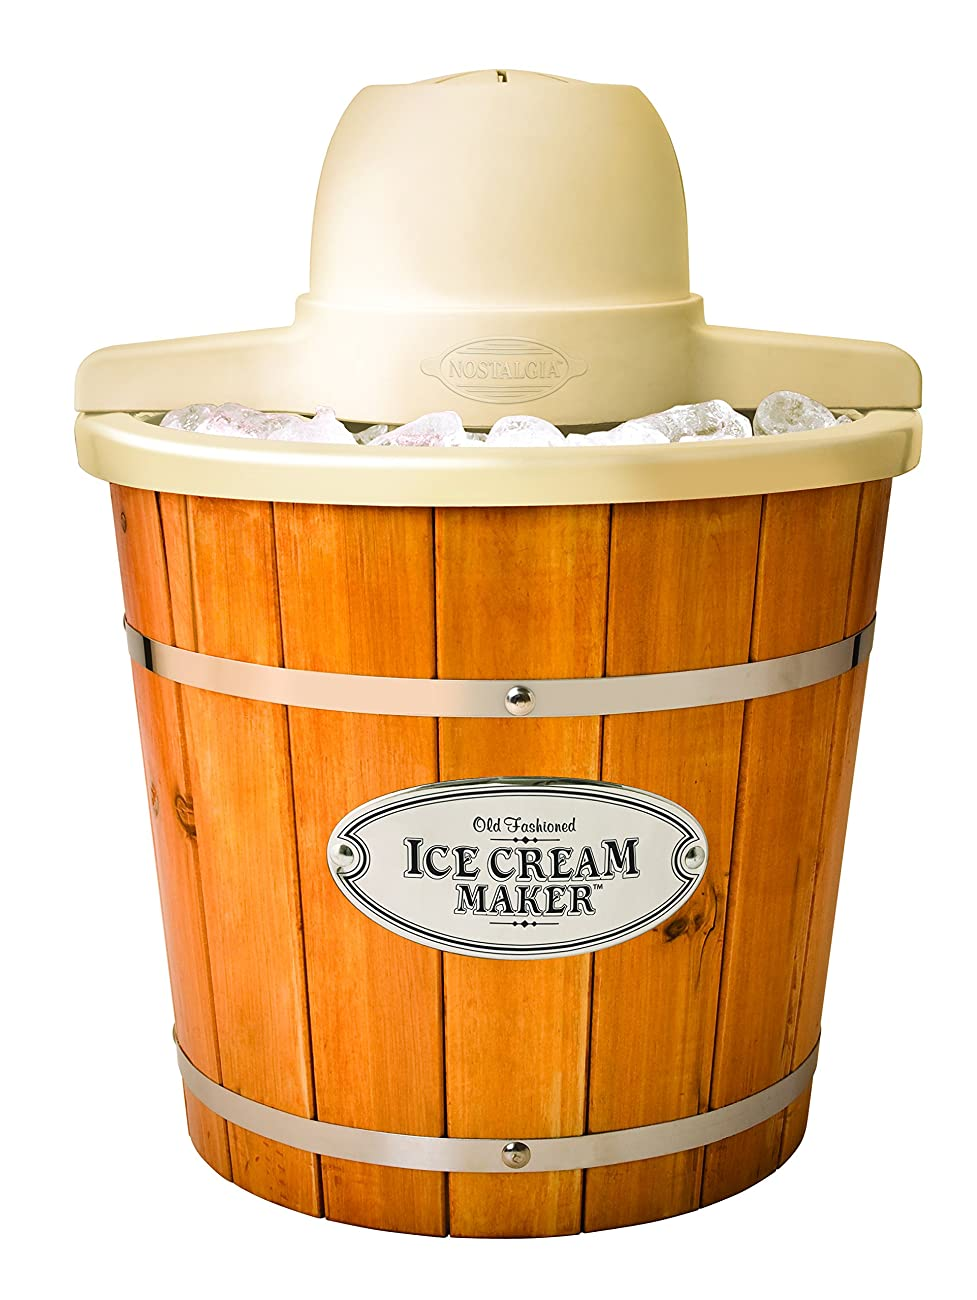 Nostalgia ICMP400WD Vintage Collection 4-Quart Wood Bucket Electric Ice Cream Maker with Easy-Clean Liner 0